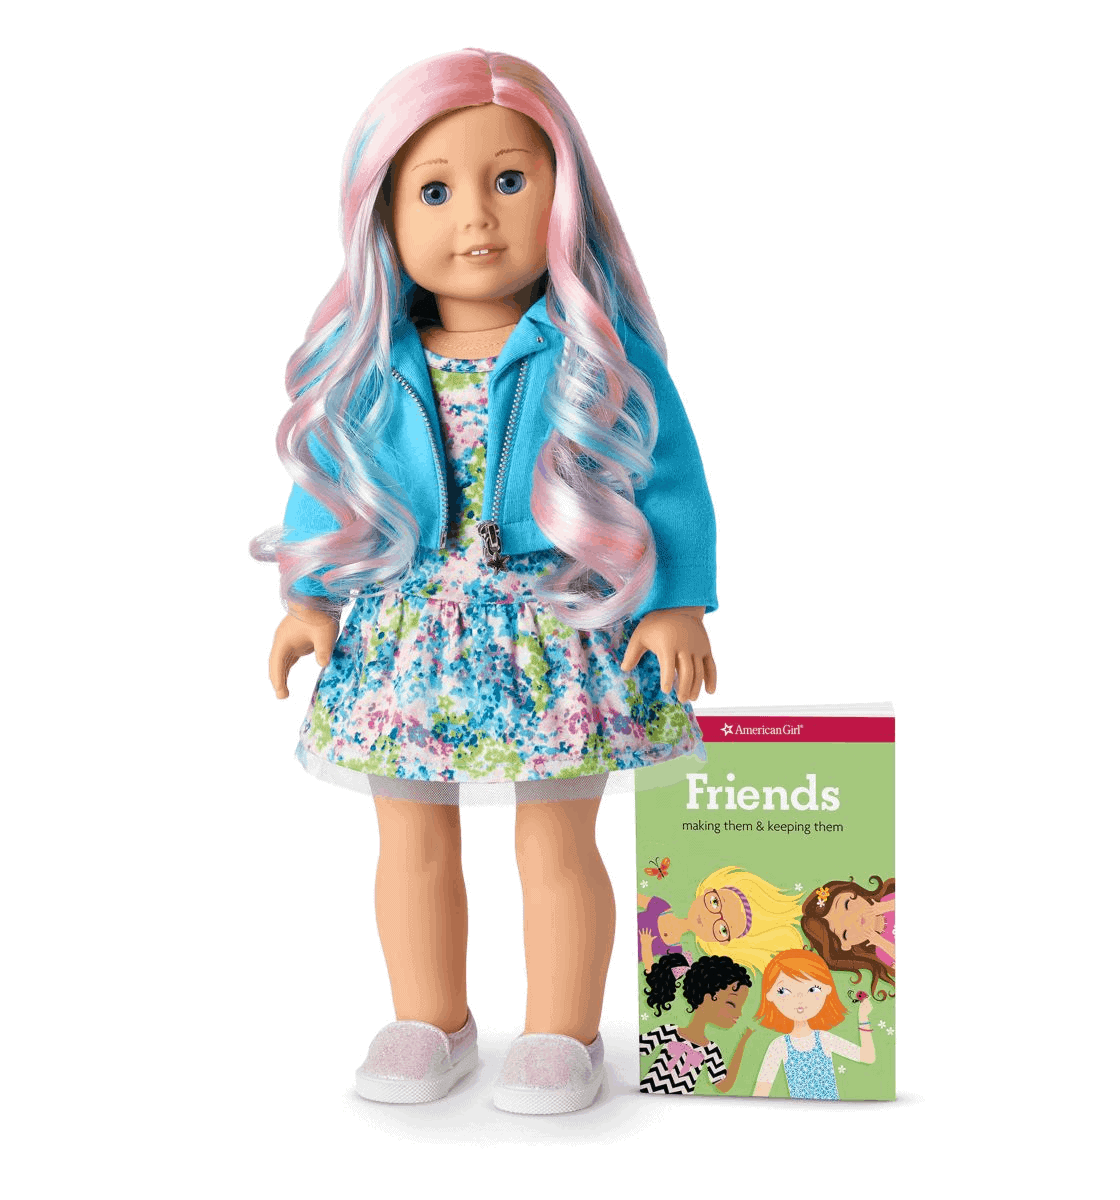 a doll with pink and blue hair standing next to a Friends book